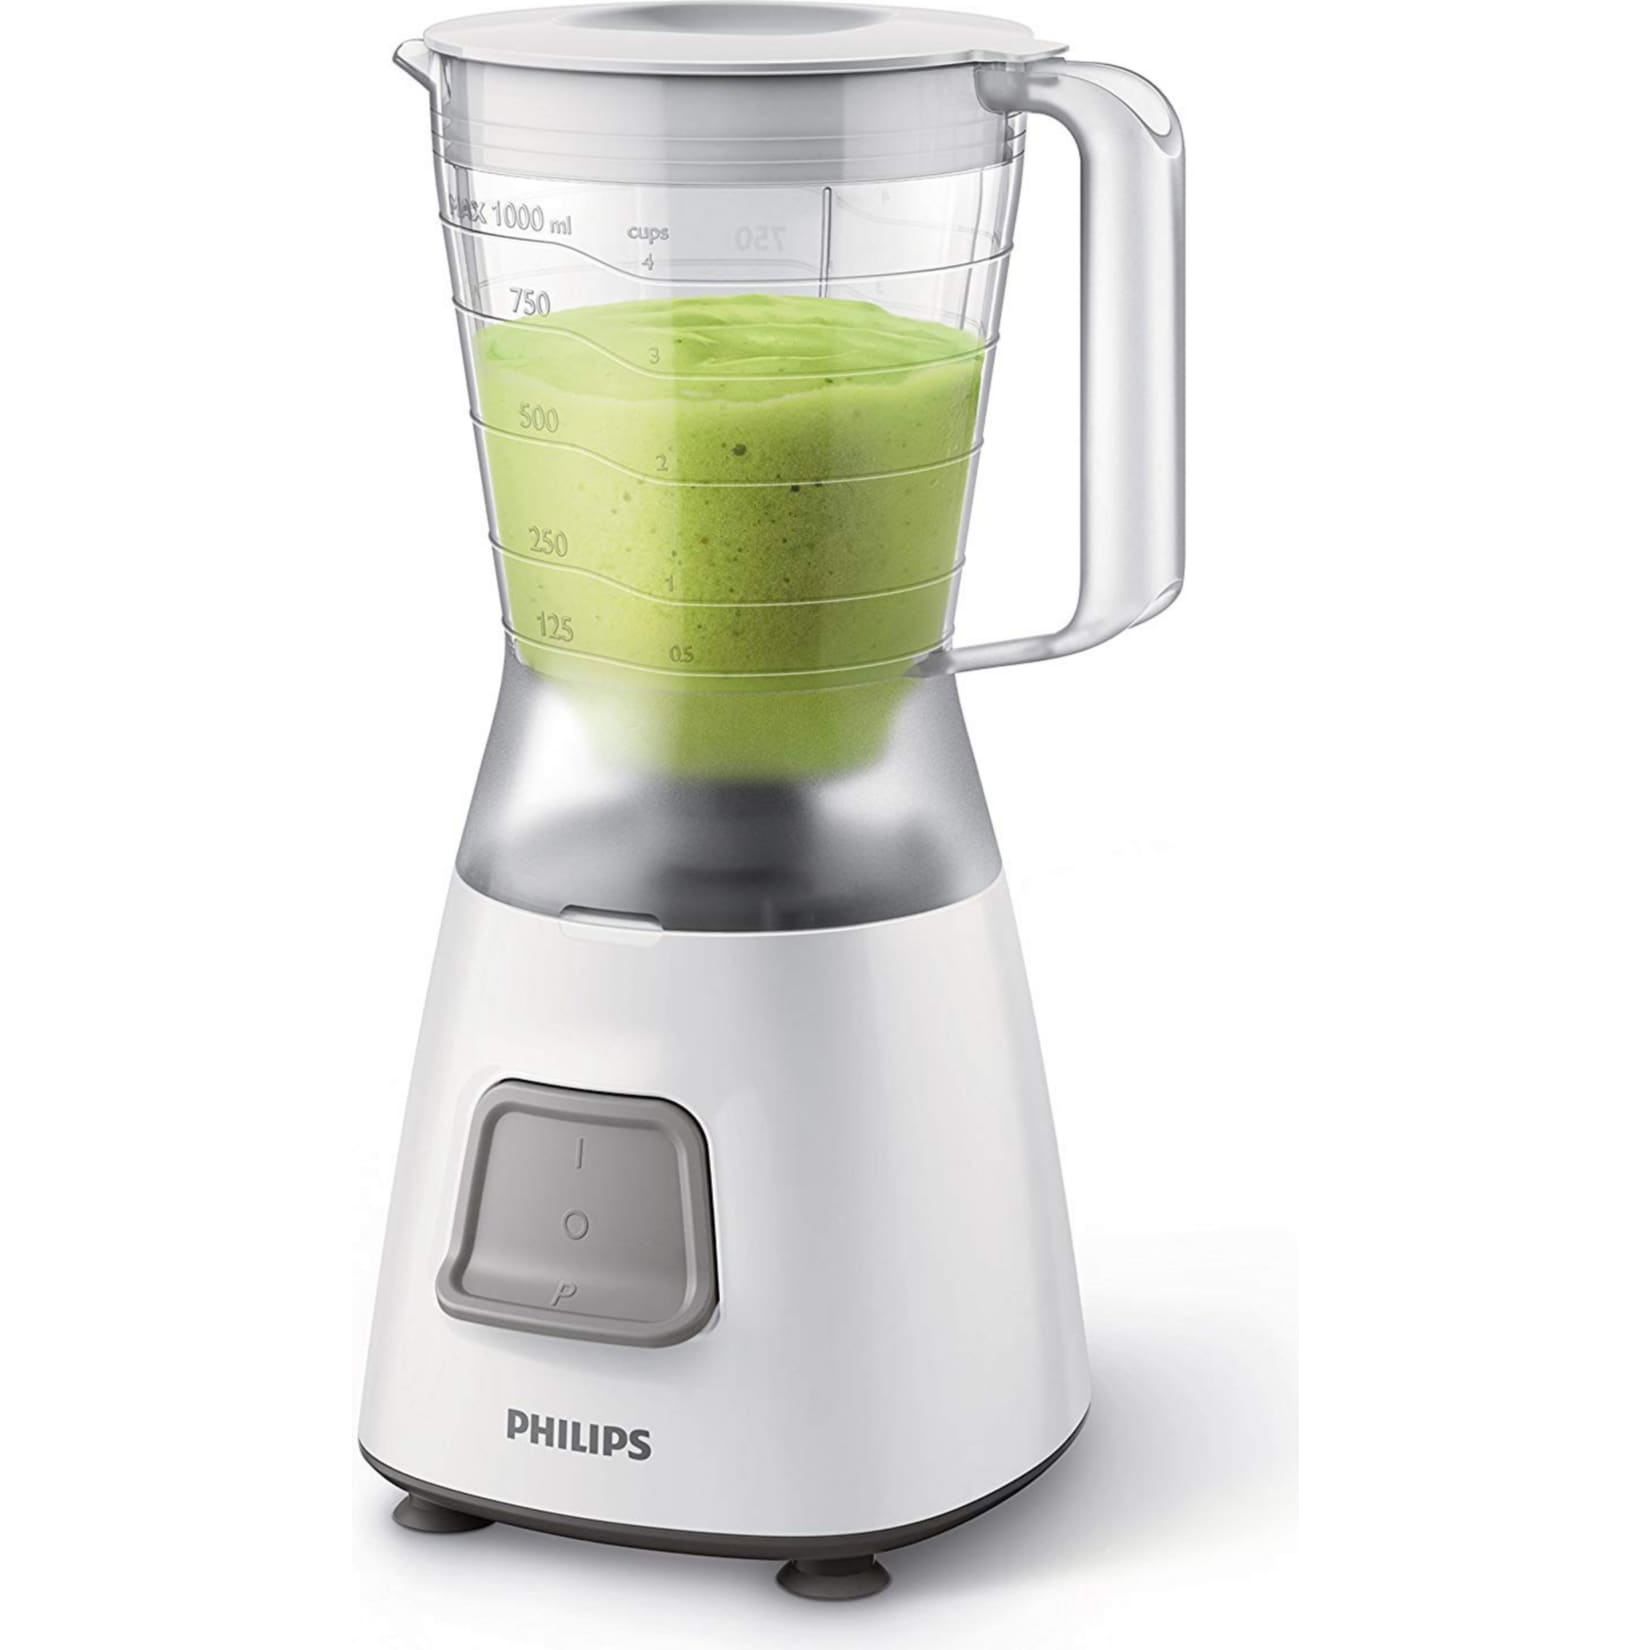 Philips HR2056/0 Via Blender von Philips